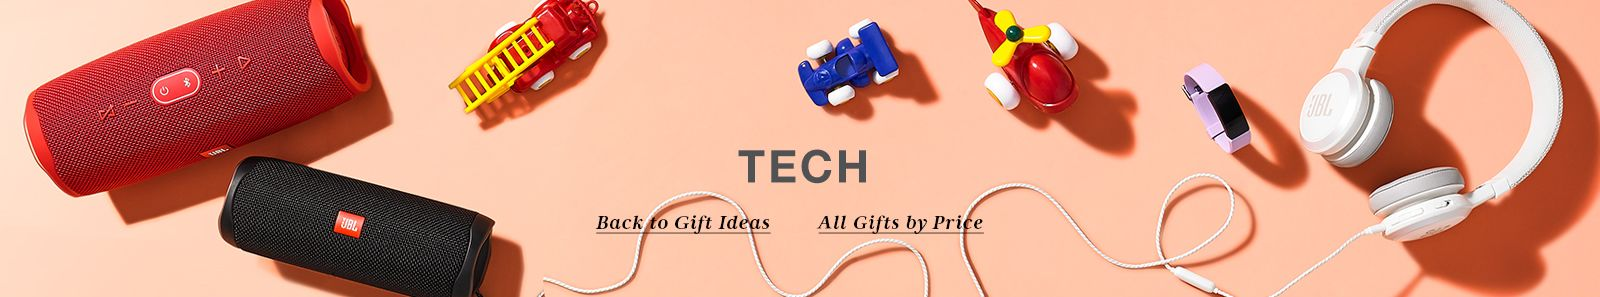 Tech, Back to Gift Ideas, All Gifts by Price